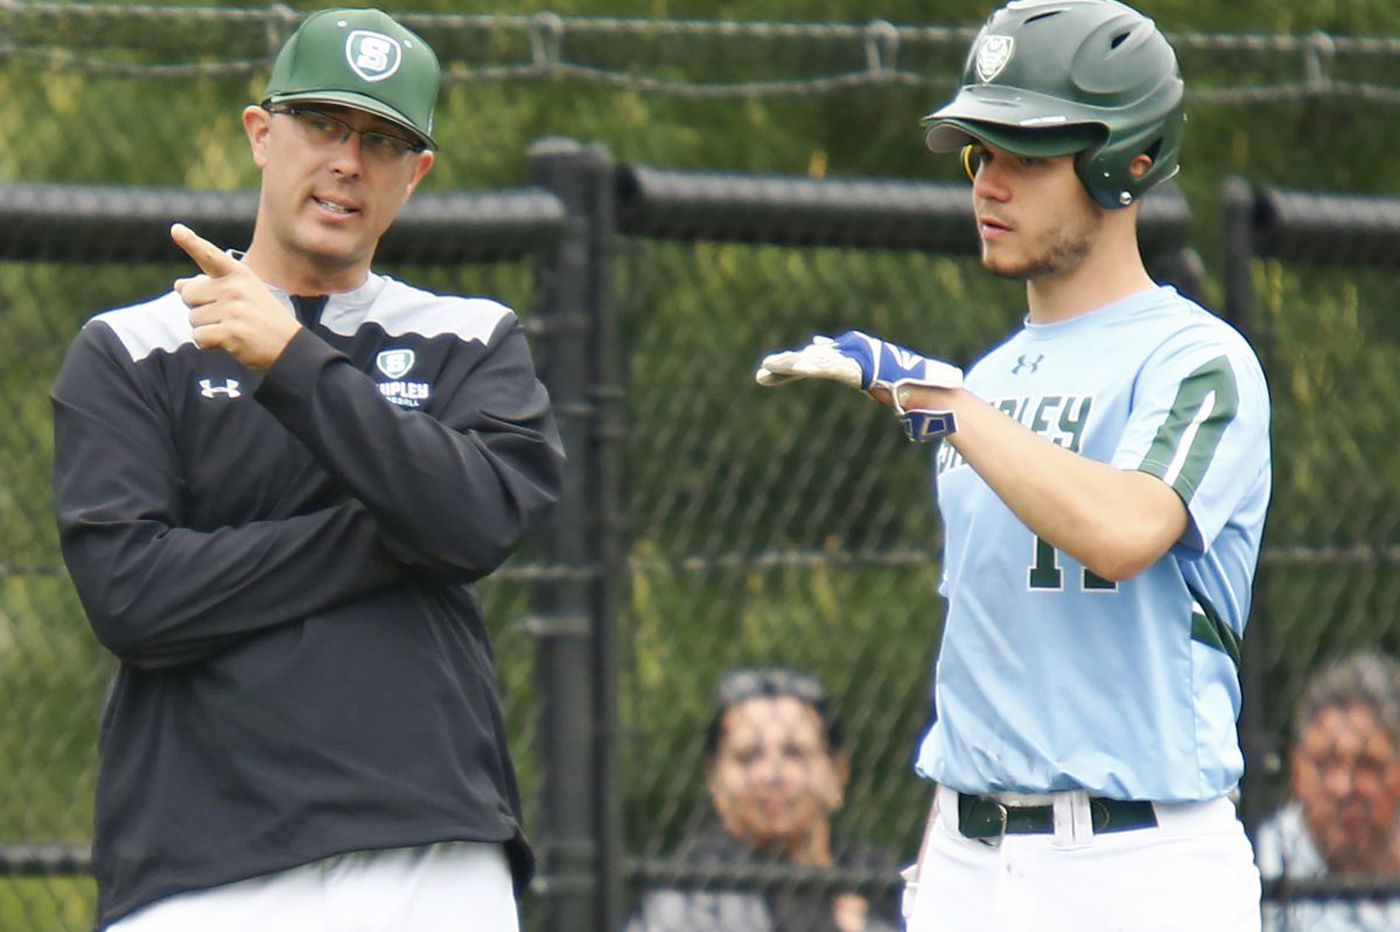 Tuesday's Pa. roundup: Shipley beats Barrack Hebrew in PAISAA baseball playoffs